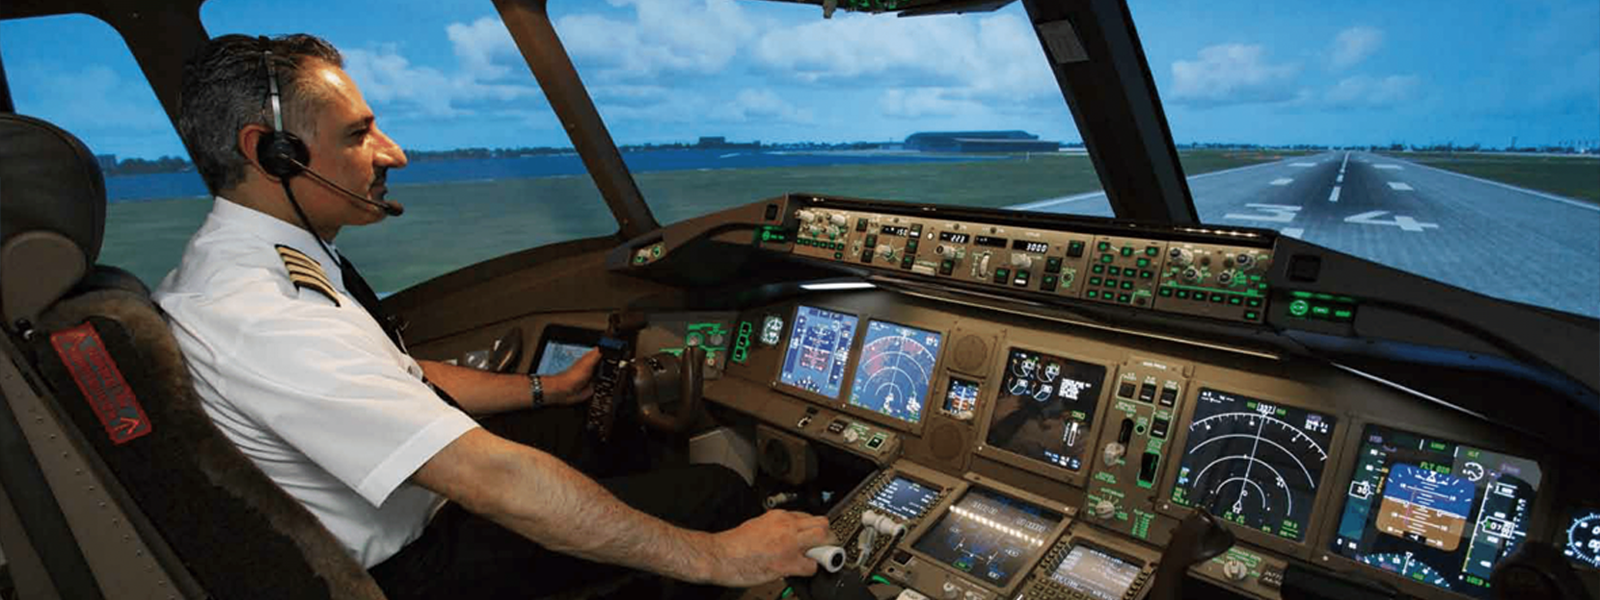 Flight Simulator of Boeing 777-300ER